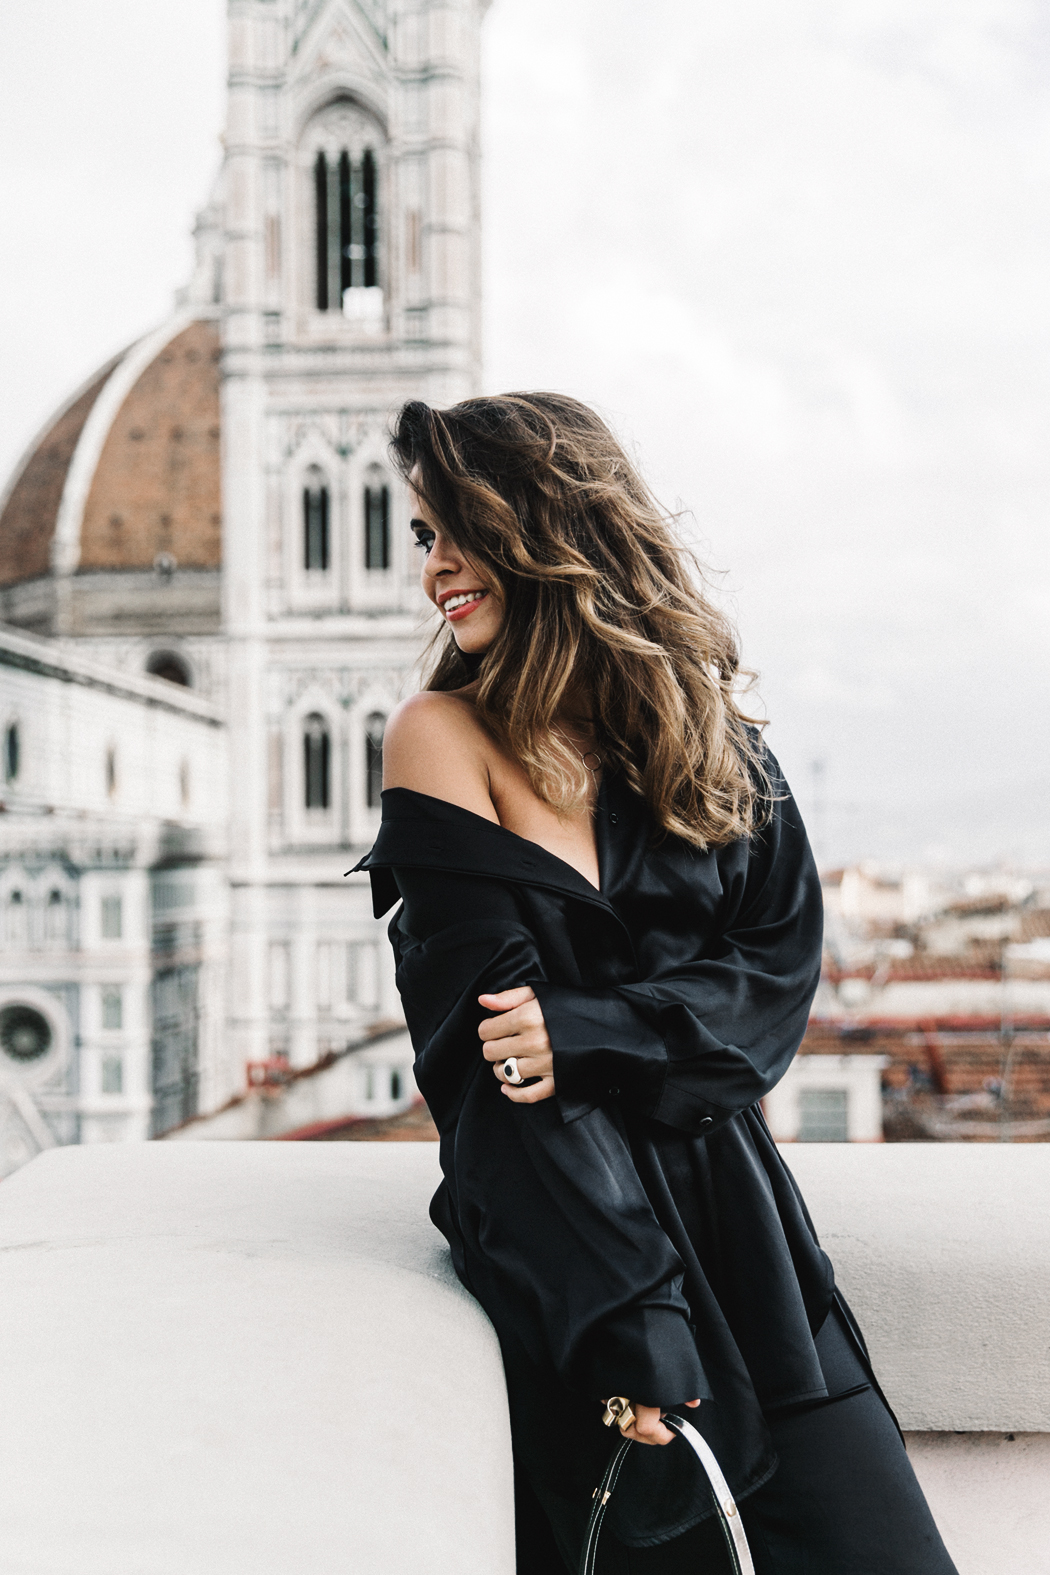 Firenze4Ever-Luisa_Via_Roma-Ellery_Brand-Black_Outfit-Duomo_Florence-Outfit-Street_Style-60